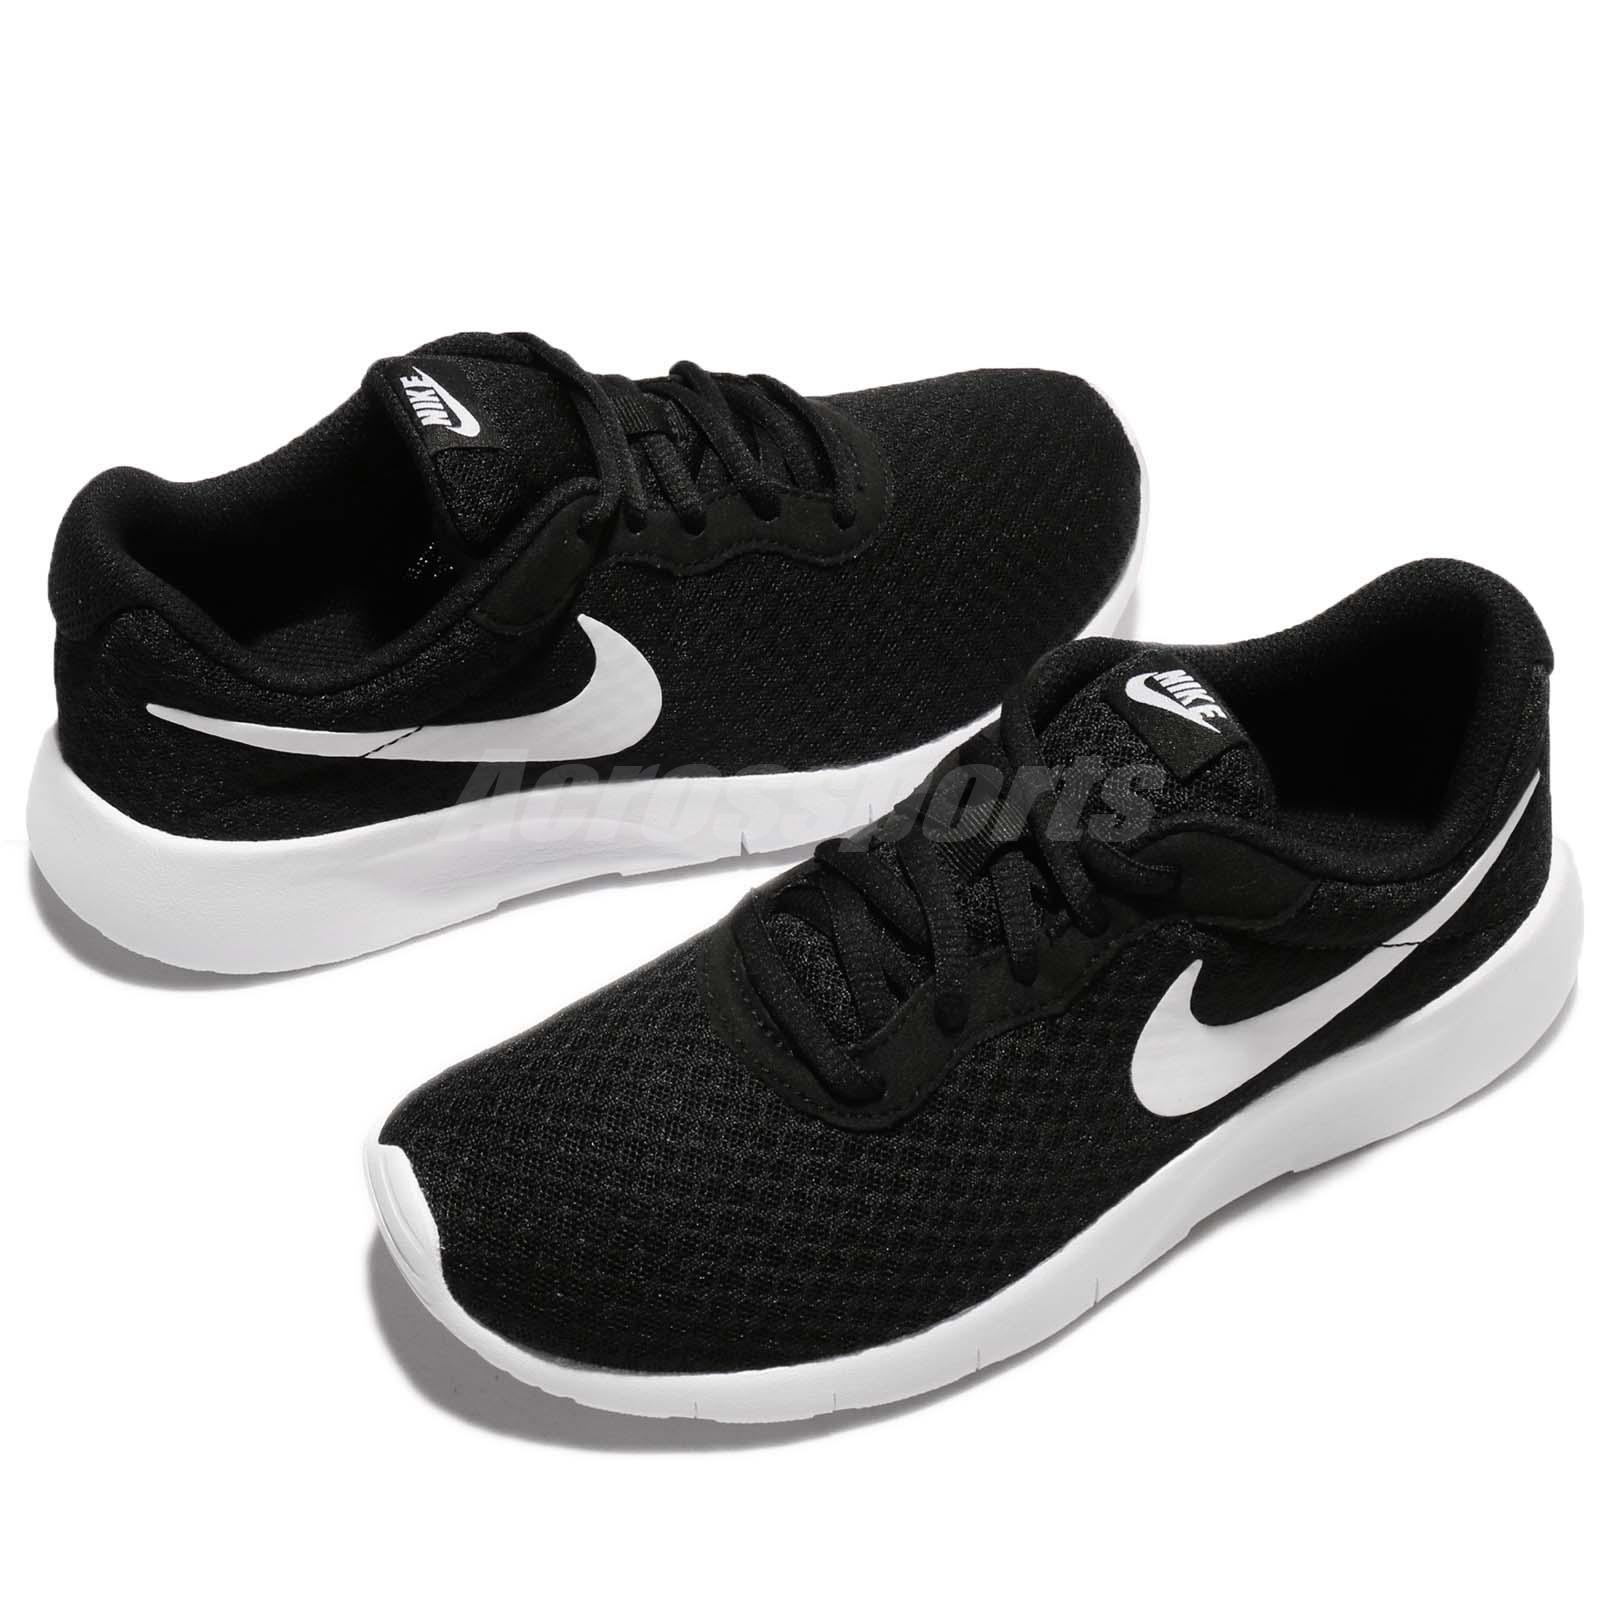 Nike Tanjun Boys Shoes Size